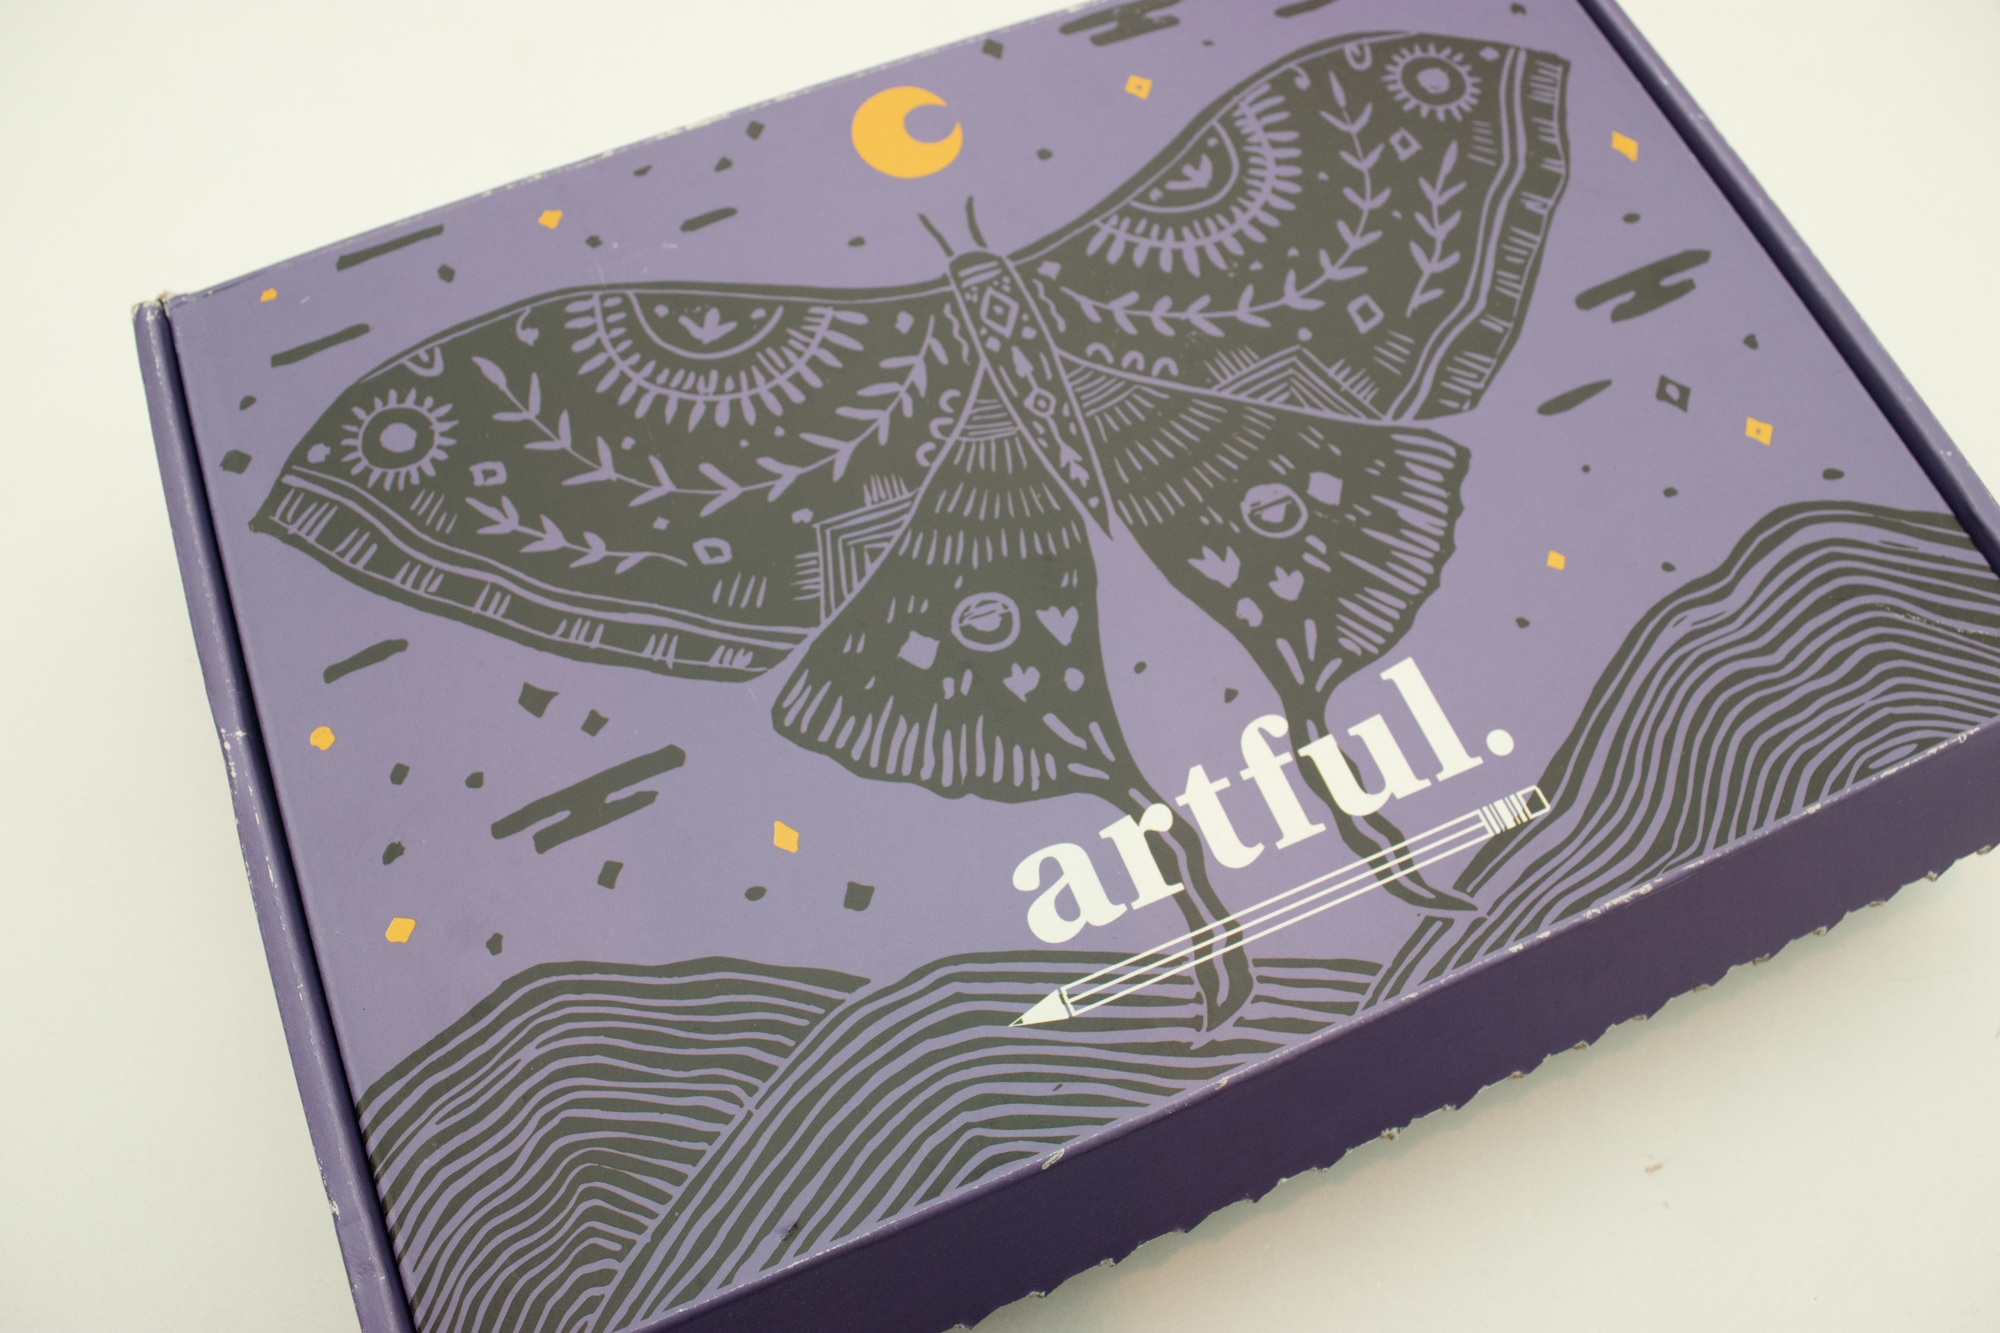 Artful subscription box packaging